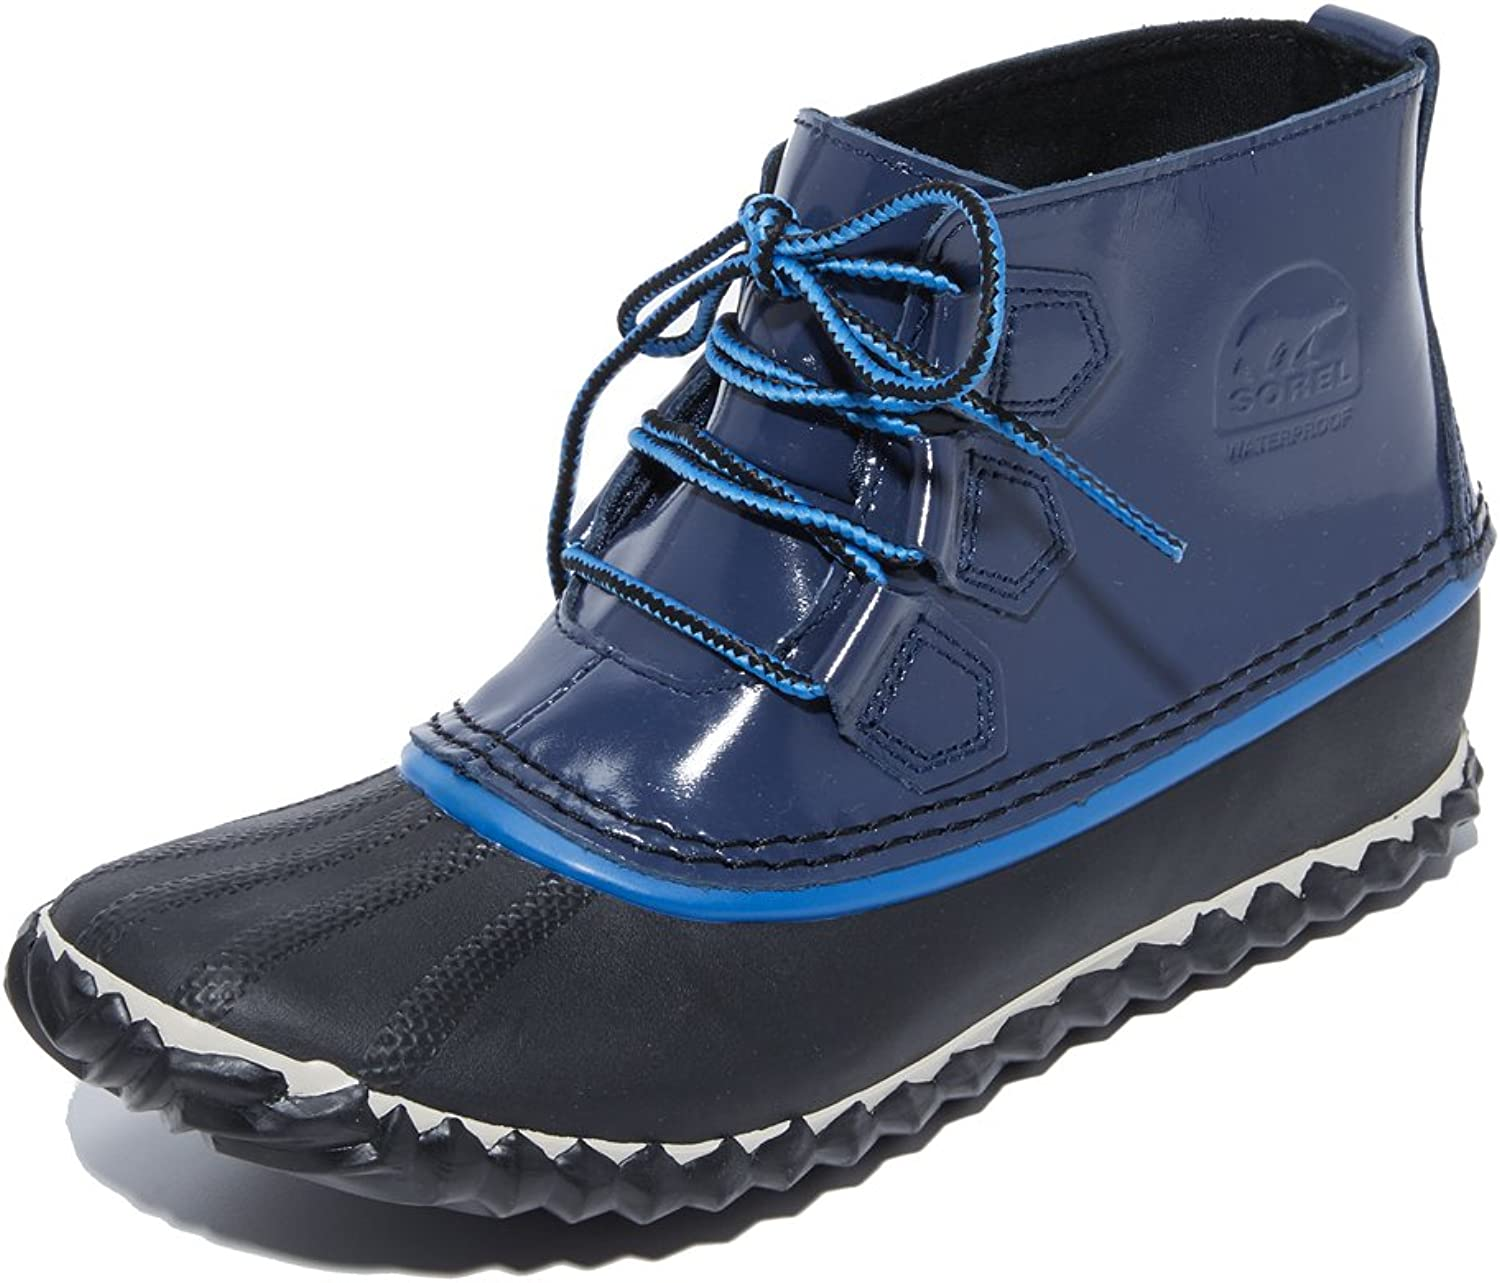 Sorel out N About Leather, Botas Chukka para Mujer Nocturno